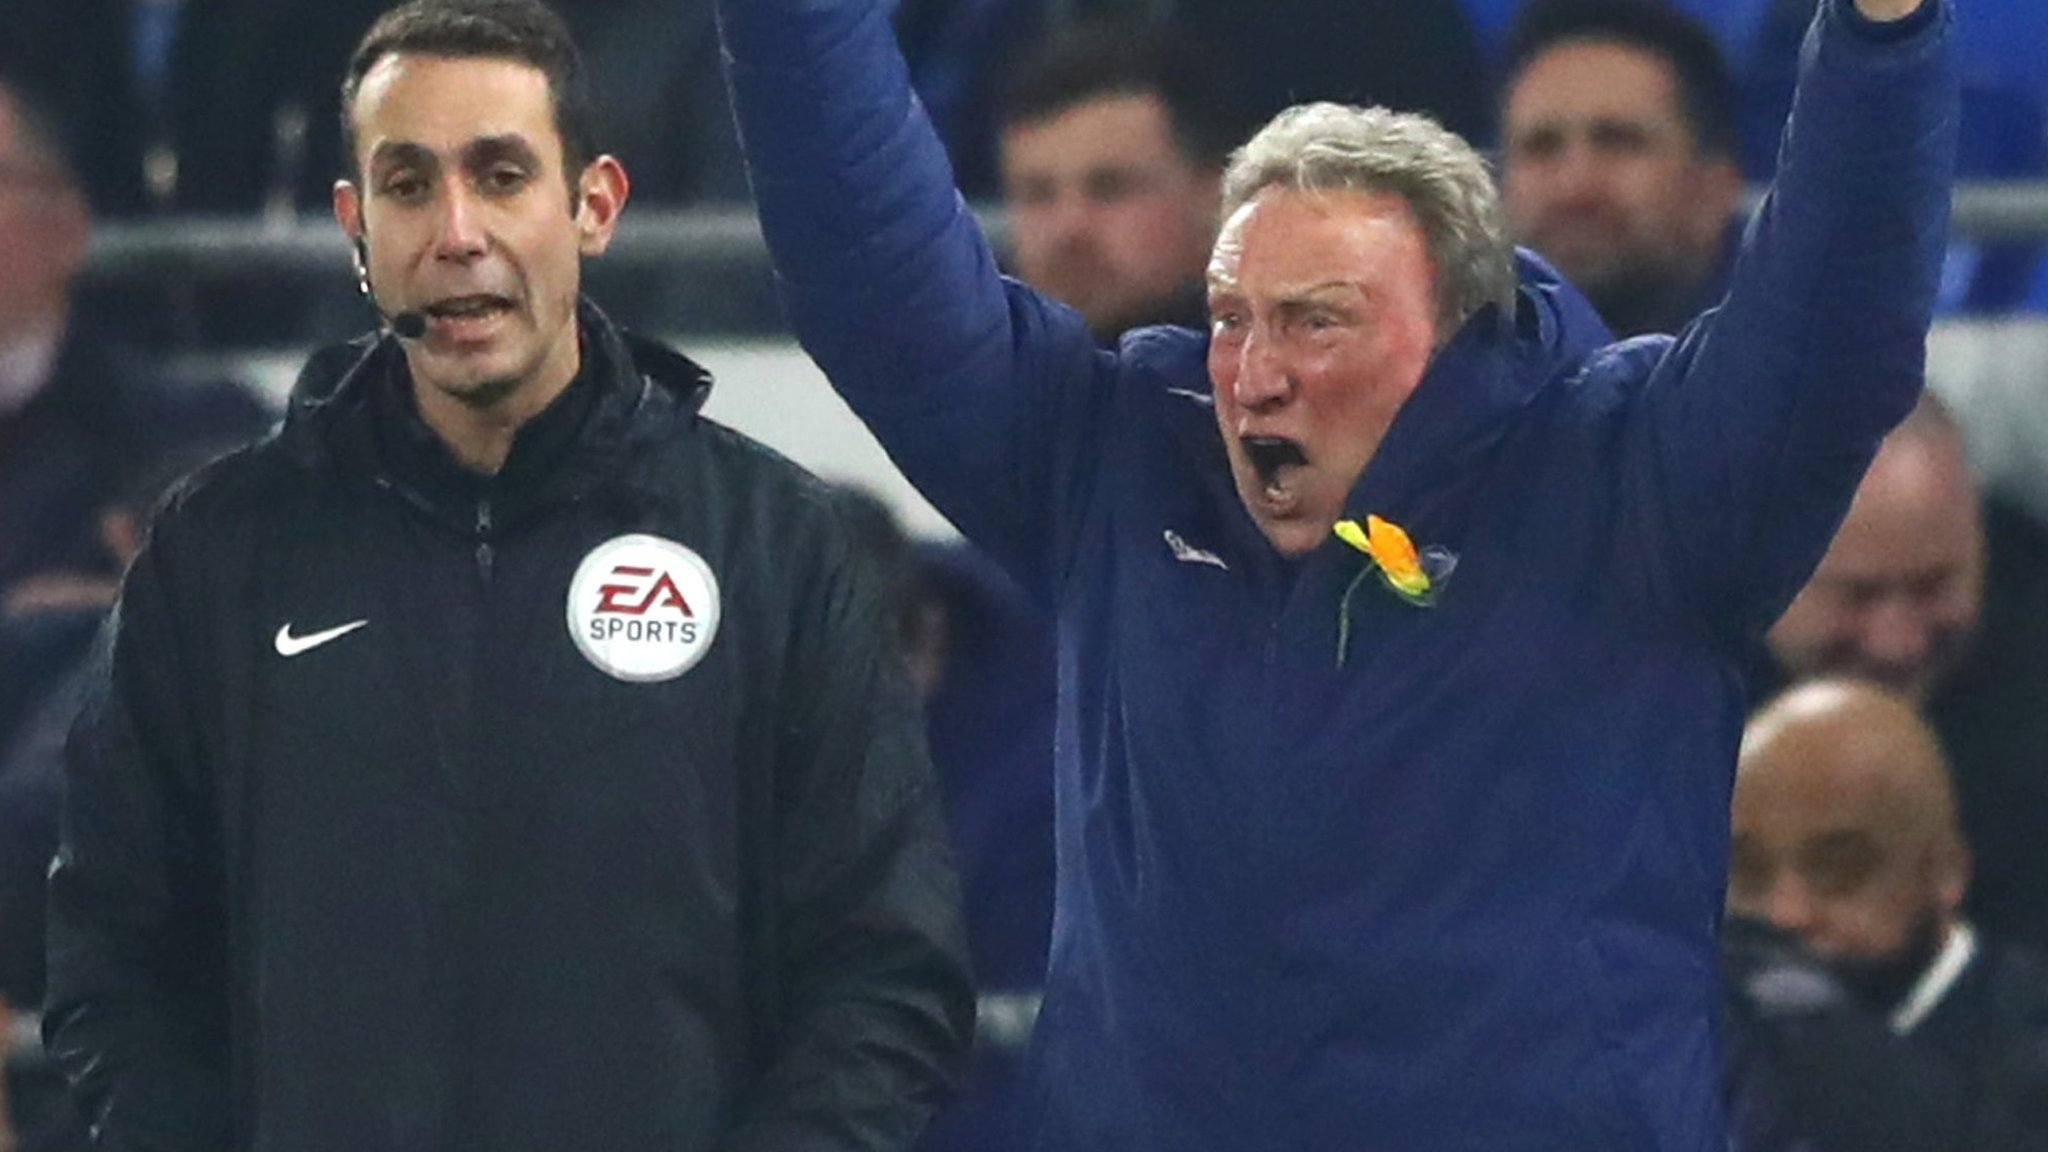 Neil Warnock and Claudio Ranieri call for VAR after controversial decisions